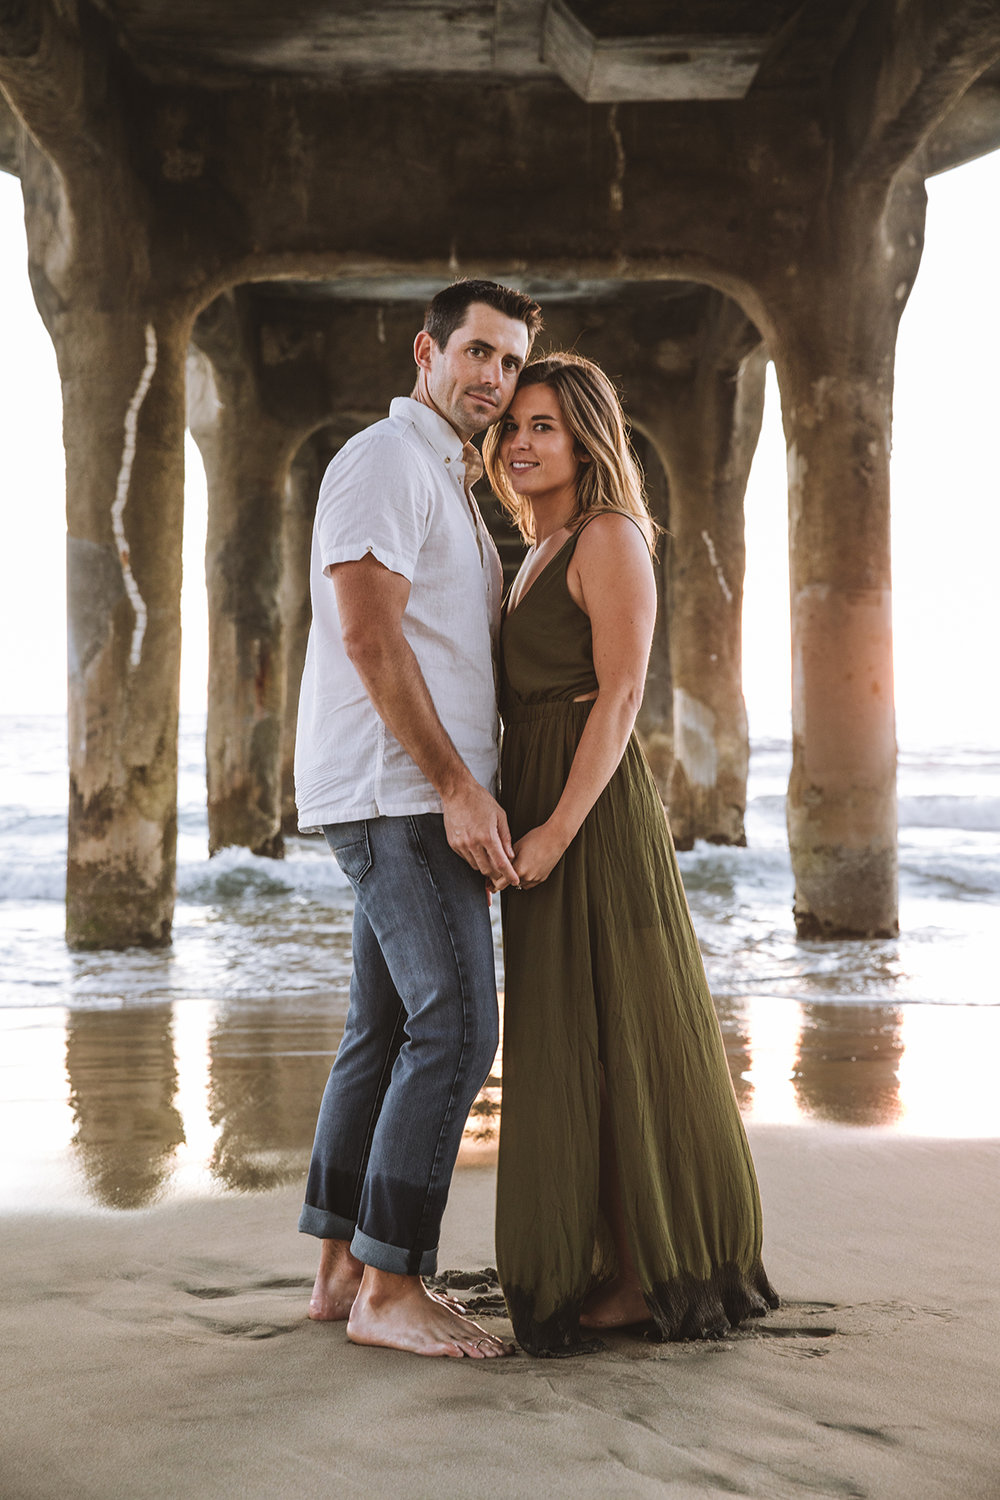 Julep-Belle-Engagement-Photography-Beach-16.jpg